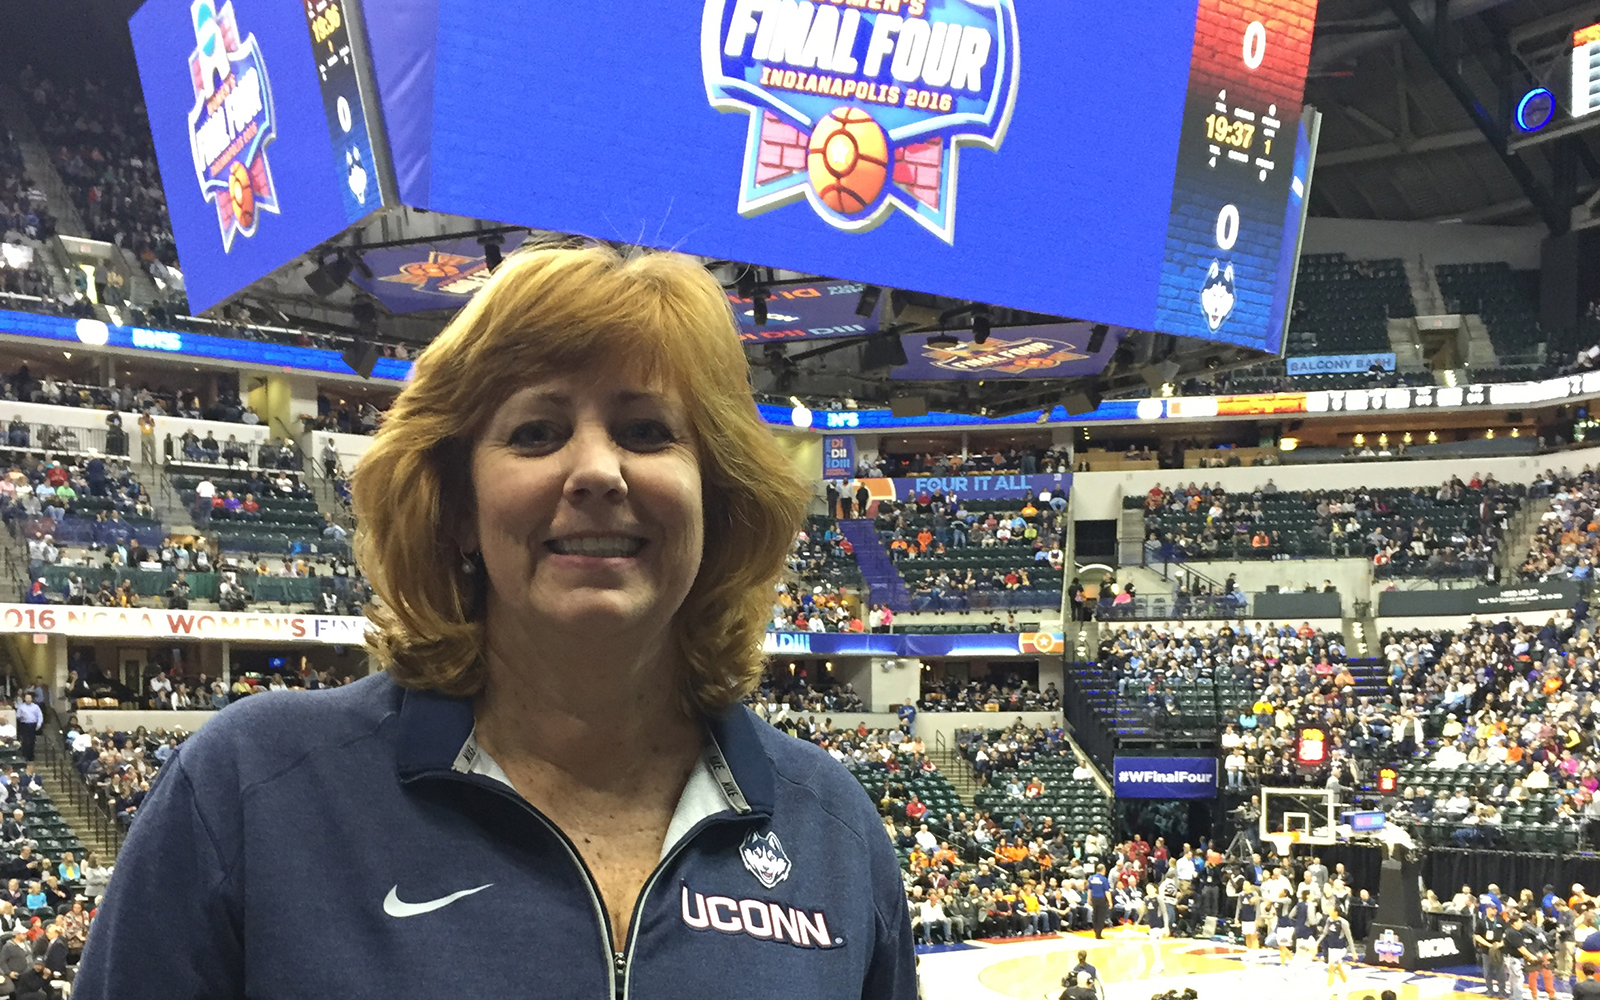 Lucy Gilson, head of the management department and faculty advisor to several of the women's basketball players, says 'If we each do our jobs well, we perform well as a team.' (Lucy Gilson/UConn School of Business)